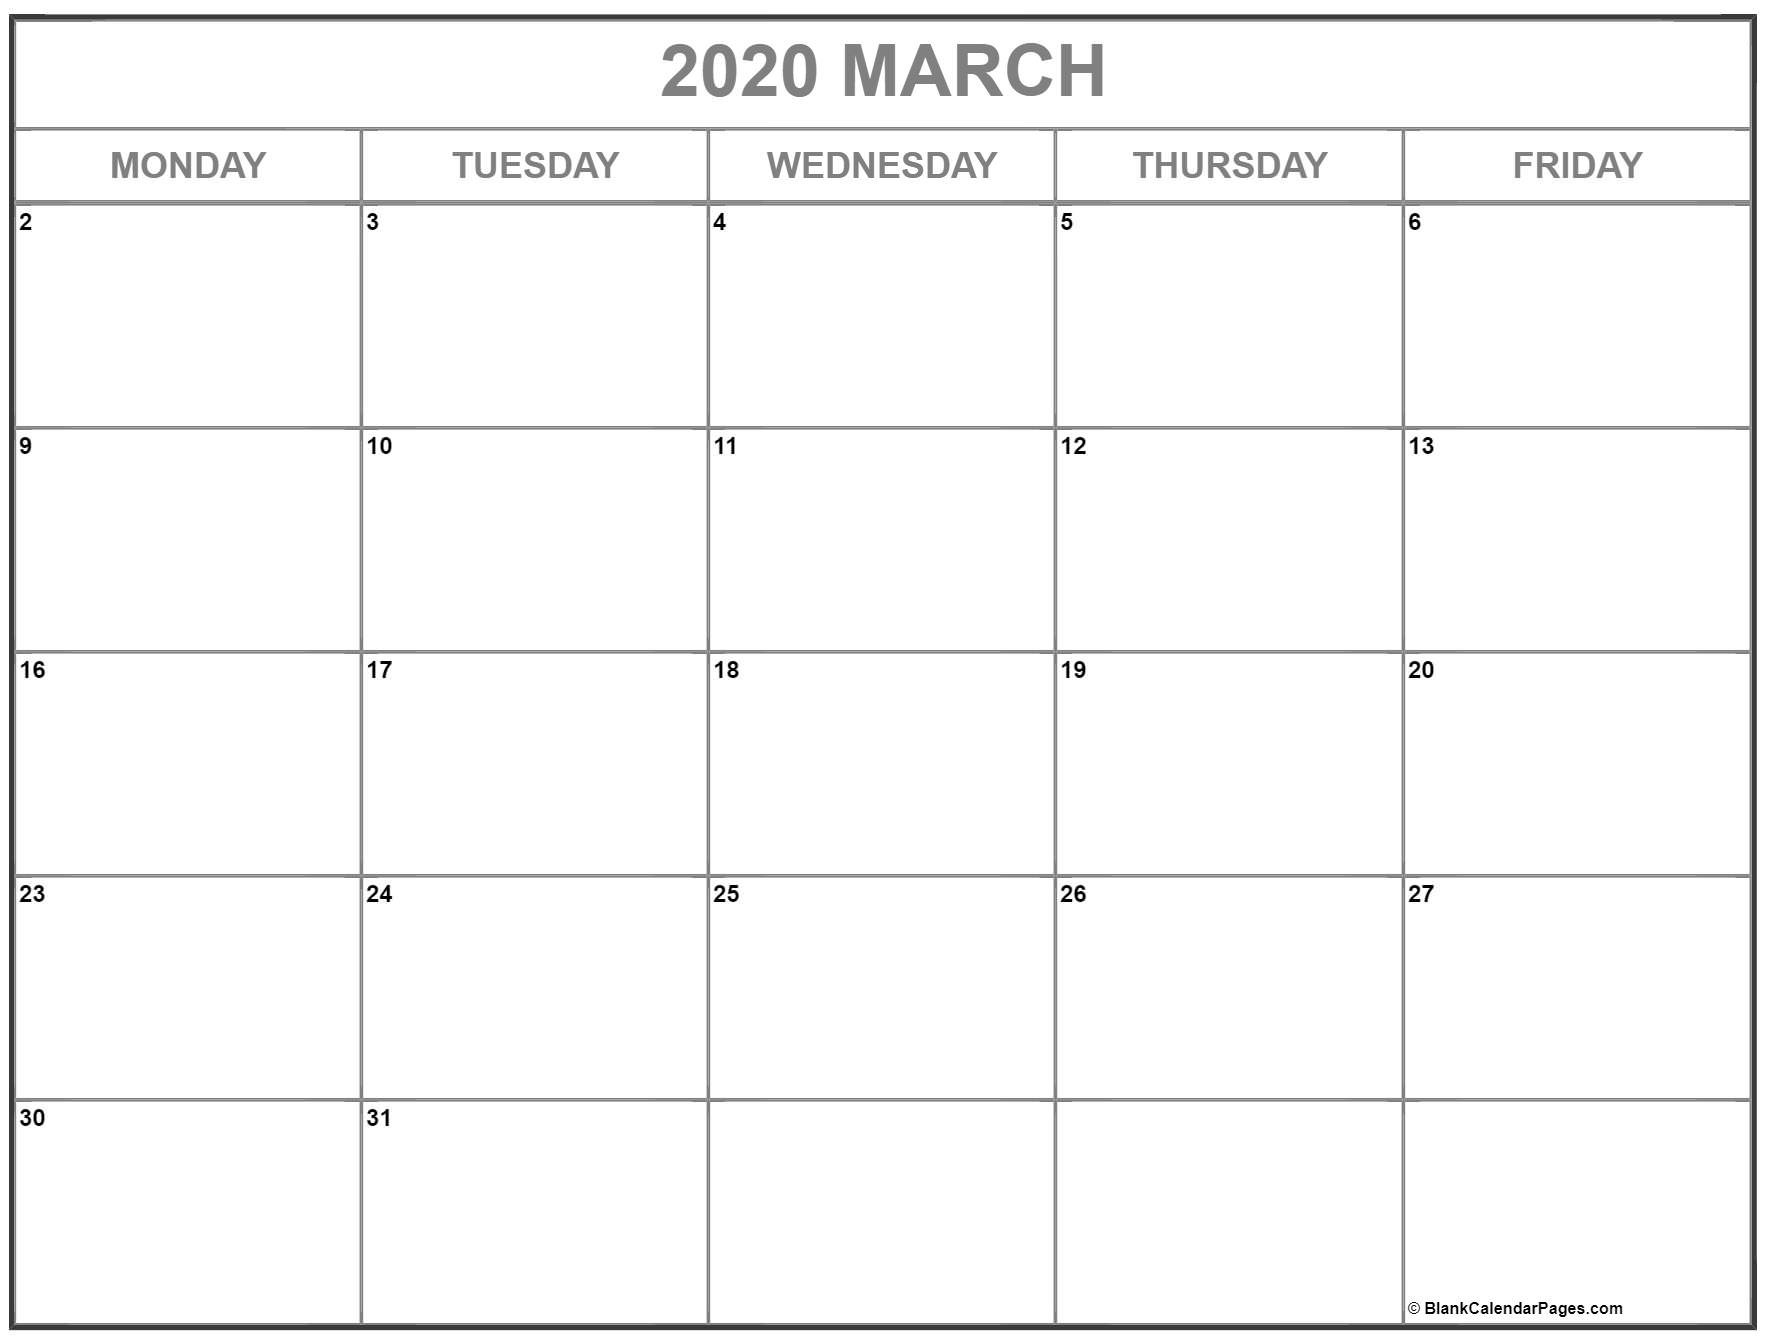 March 2020 Monday Calendar | Monday To Sunday Monday Thru Friday Calendsr